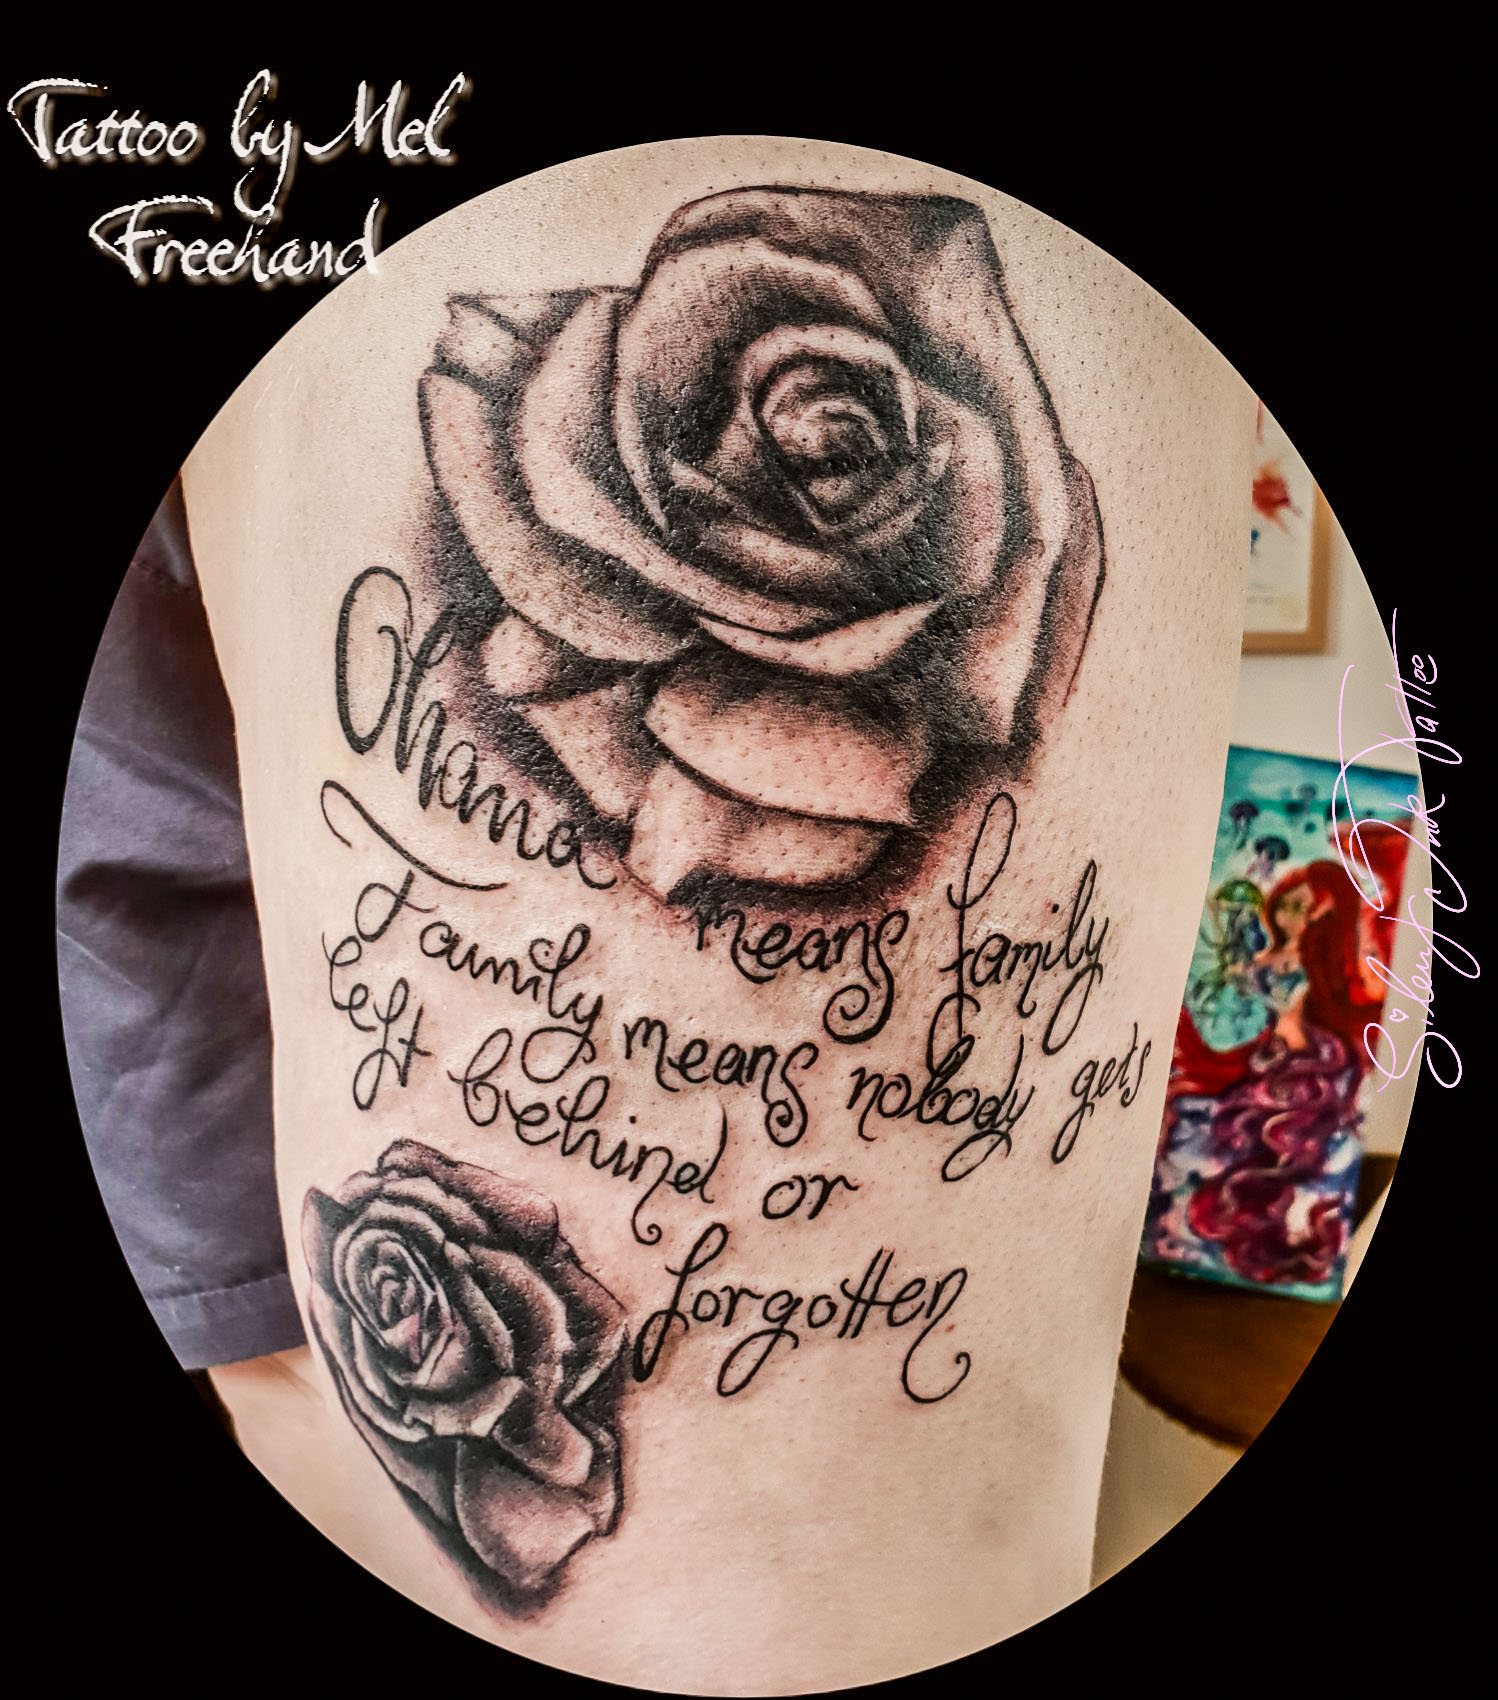 Silent Ink Tattoo, Lettering, Hannover, Mel, Schrift, Typo